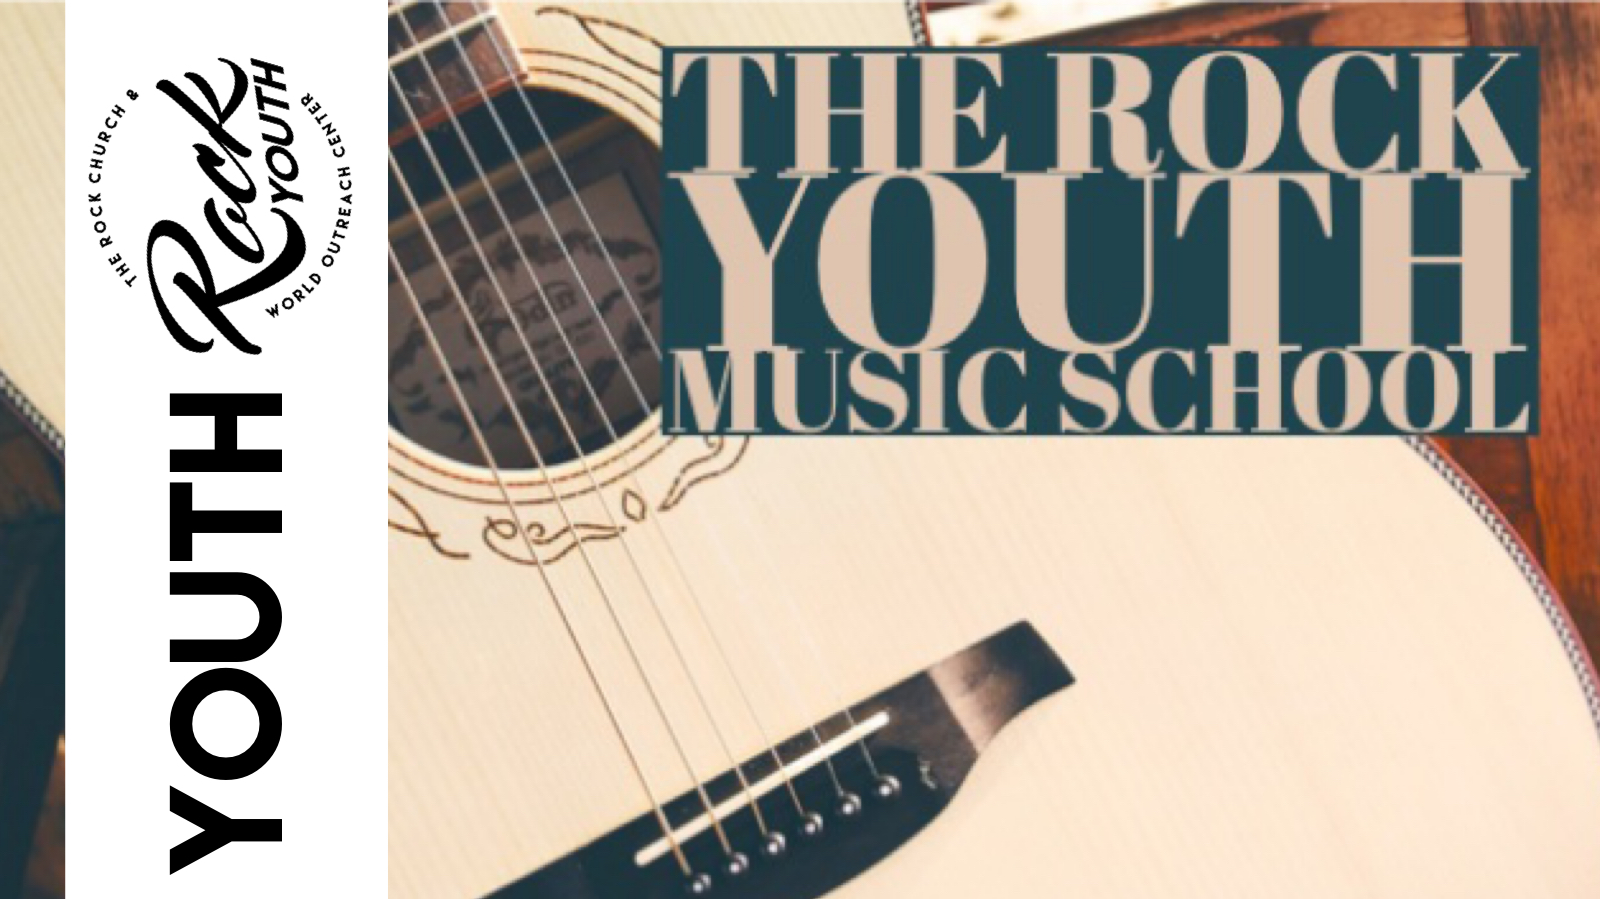 The Rock Youth Music School